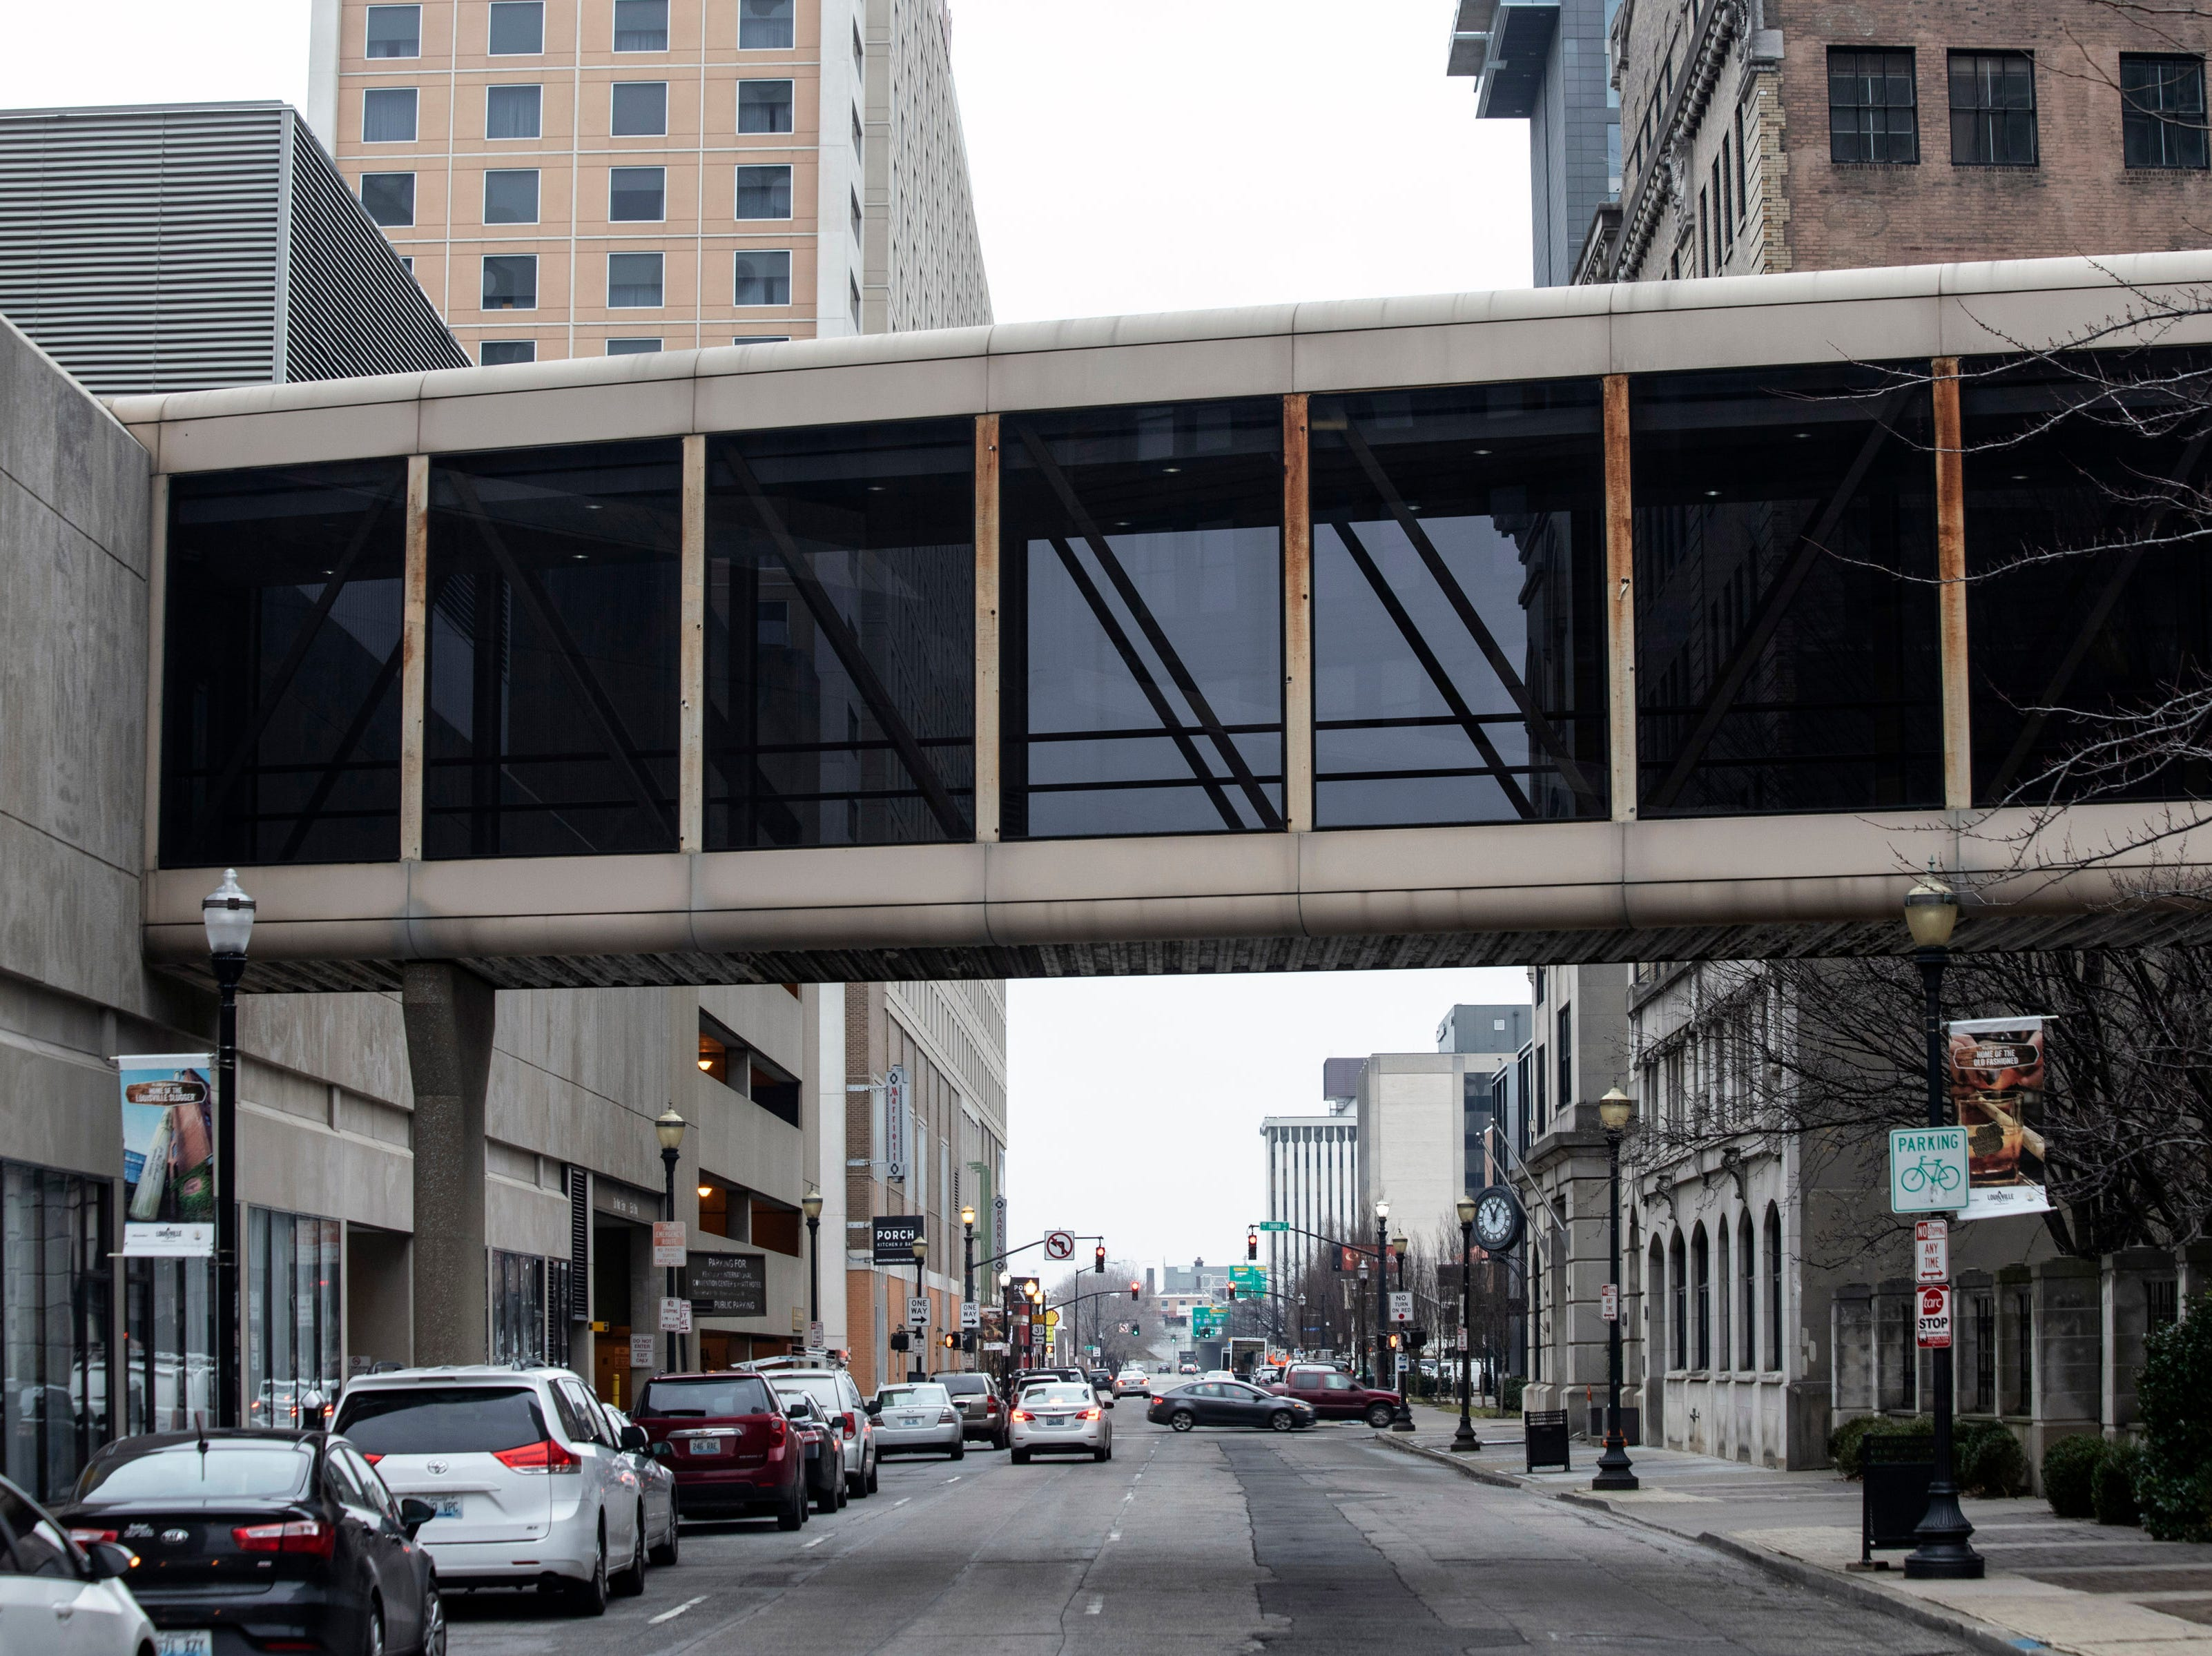 The Louie Link that stretches over Liberty Street connects the Hyatt Hotel to the Brown & Williamson Tower and ultimately Fourth Street Live. 1/16/19